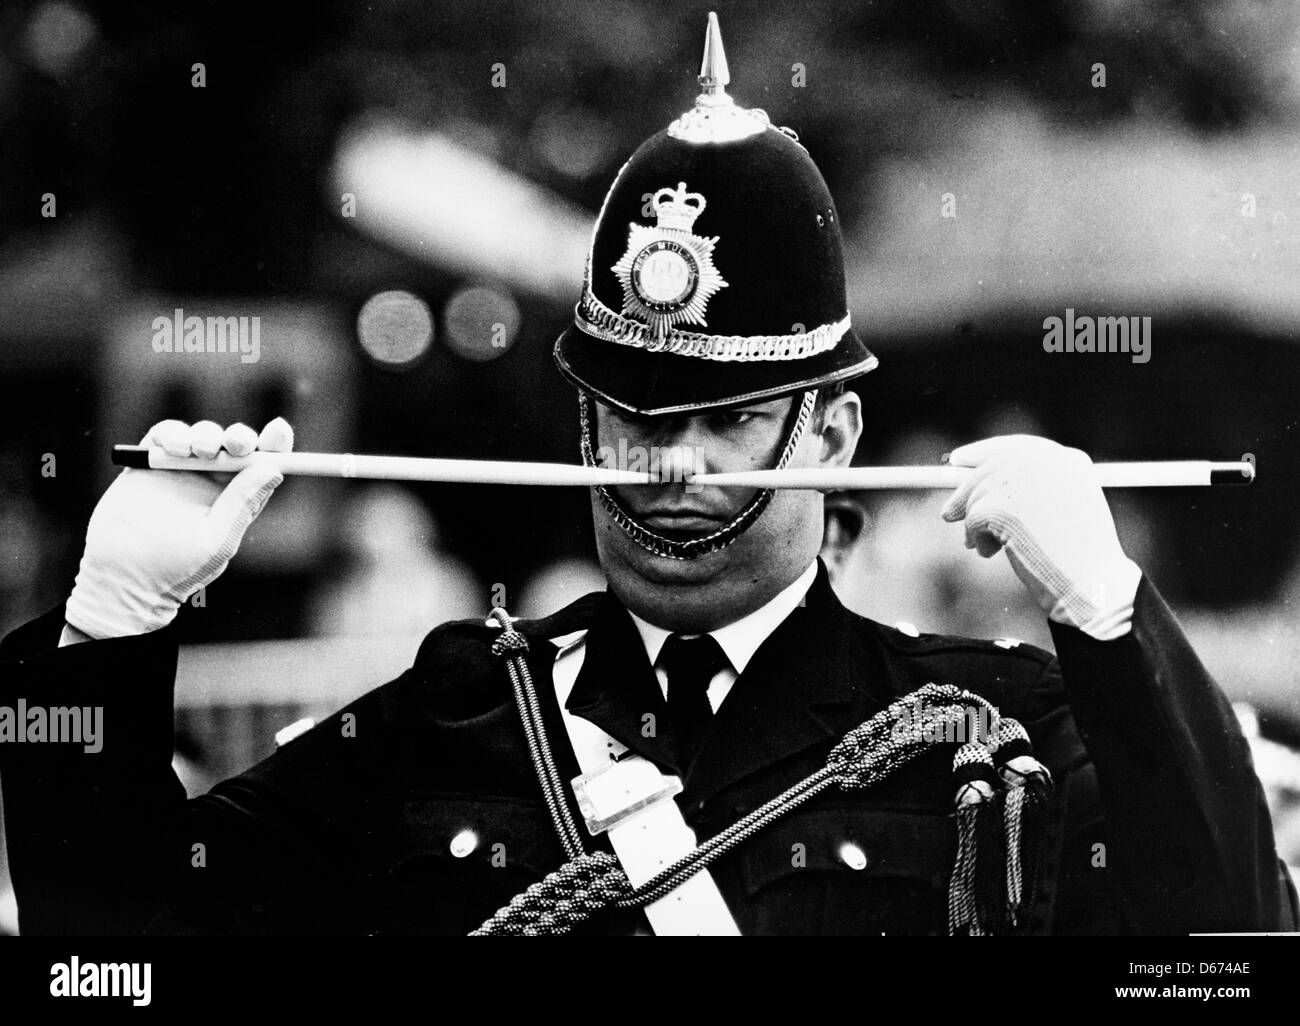 A police band member holds drumsticks to his nose during a public display in the UK - Stock Image